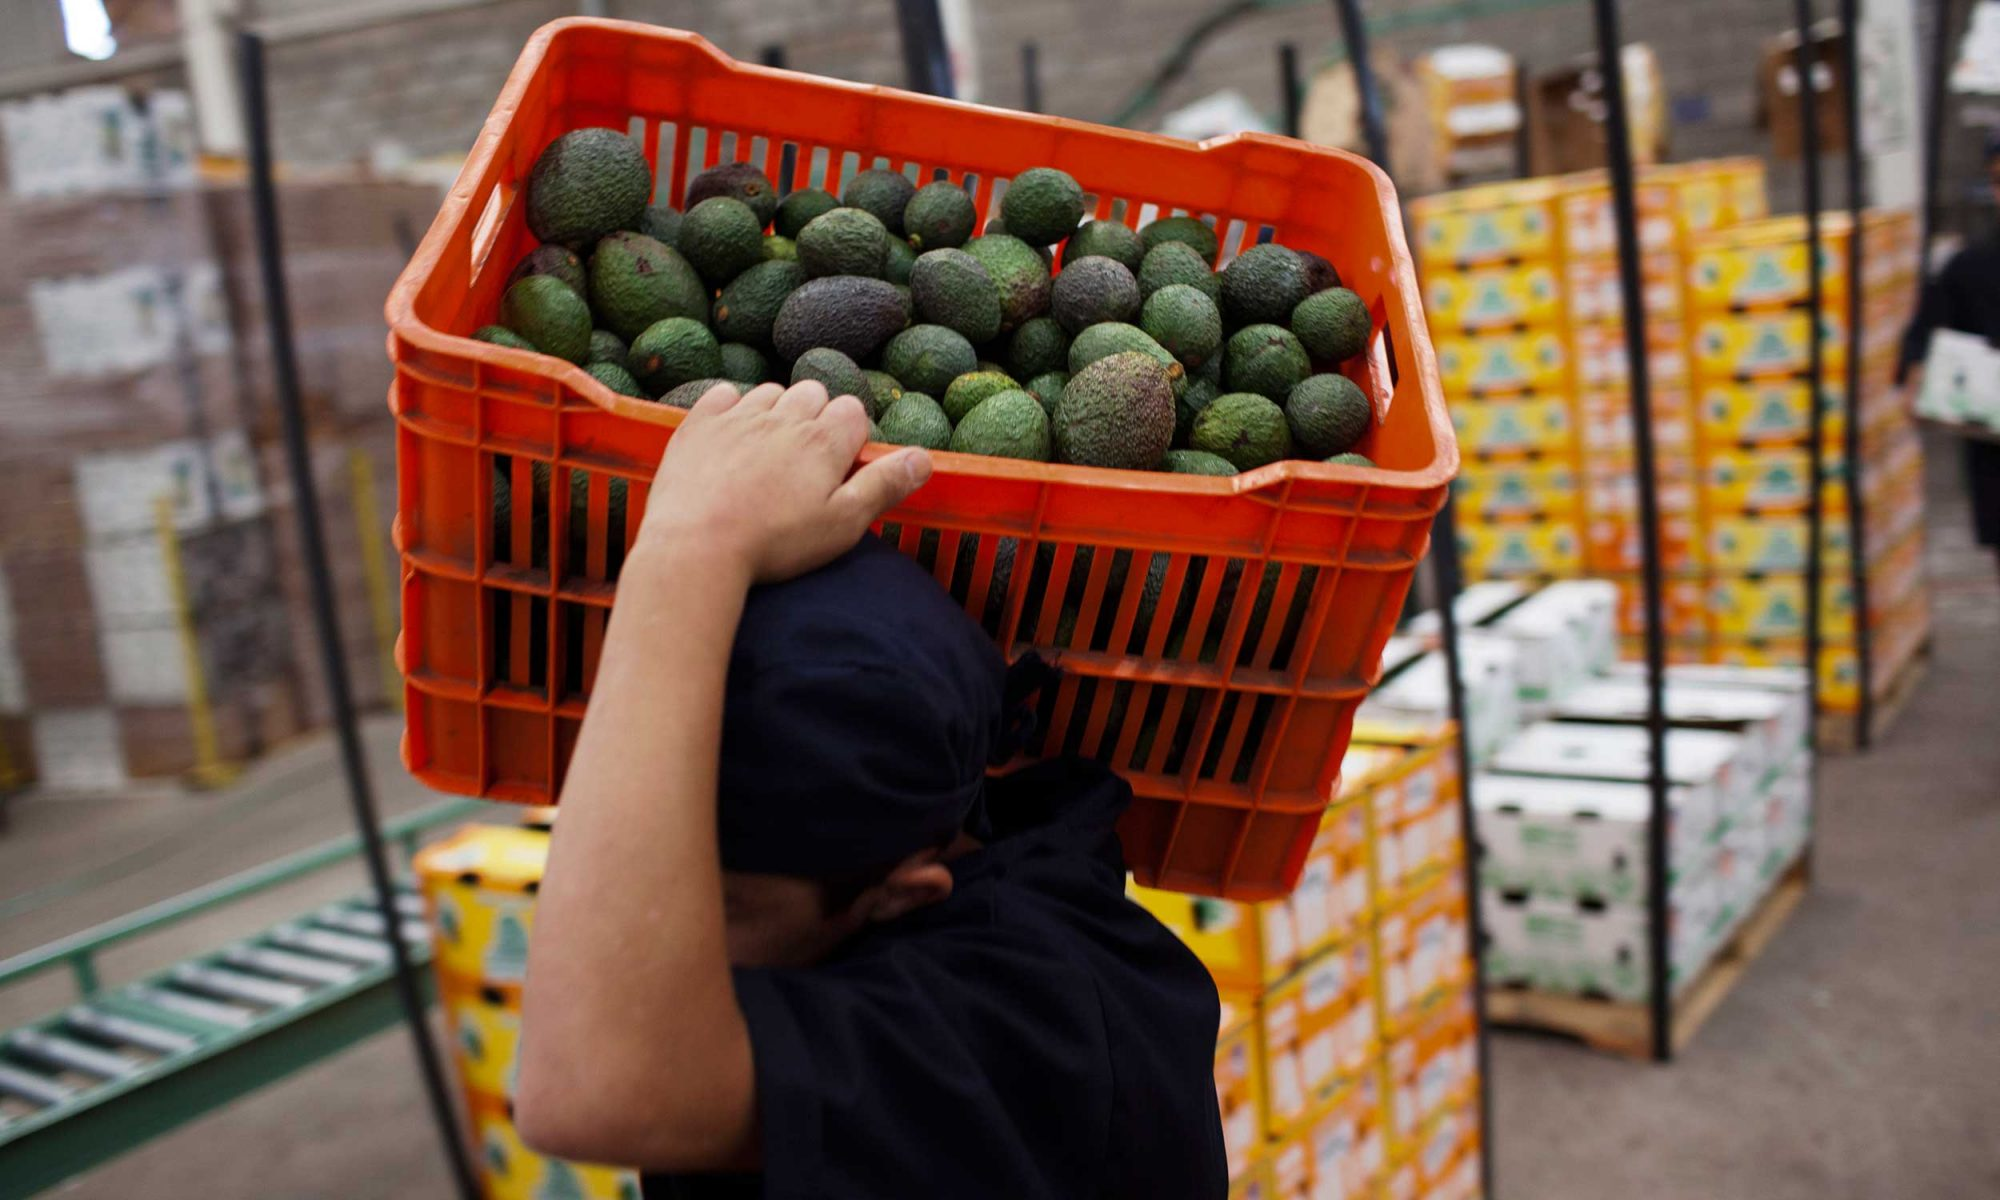 EC: Avocado Shipment Used as Cover to Smuggle a Thousand Pounds of Weed